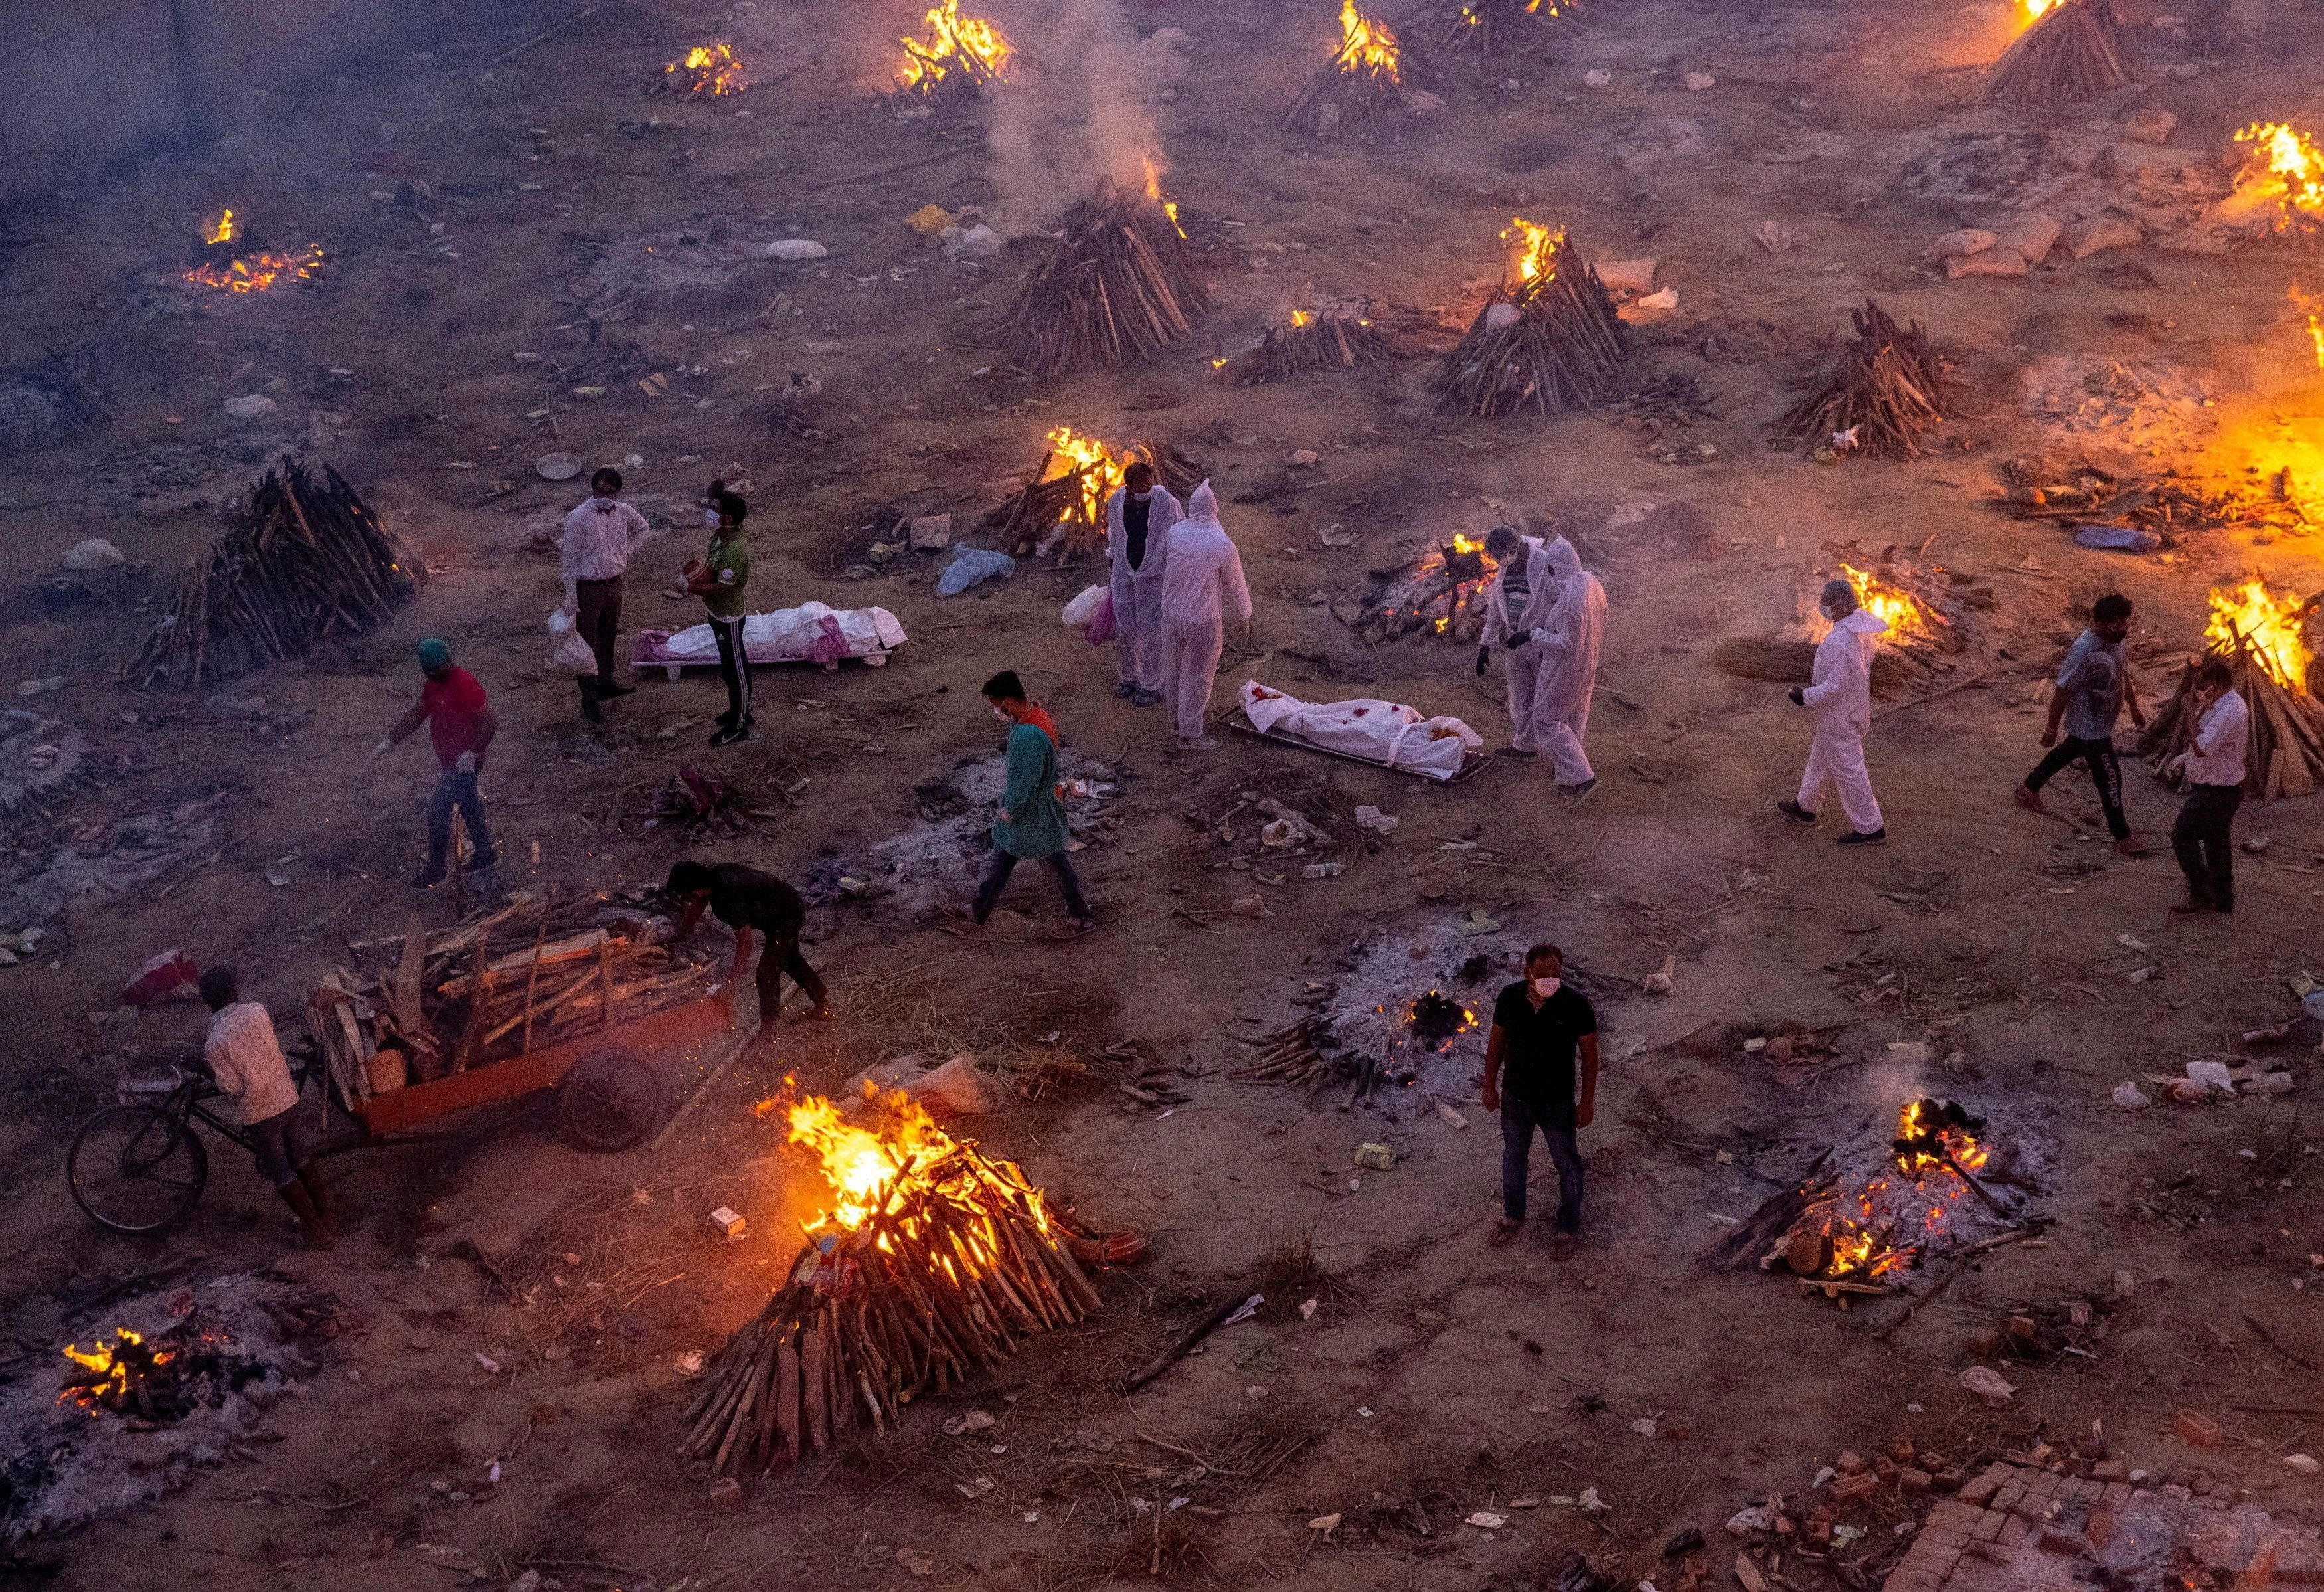 People wait to cremate victims who died due to the coronavirus disease (COVID-19), at a crematorium ground in New Delhi, India, April 23, 2021.